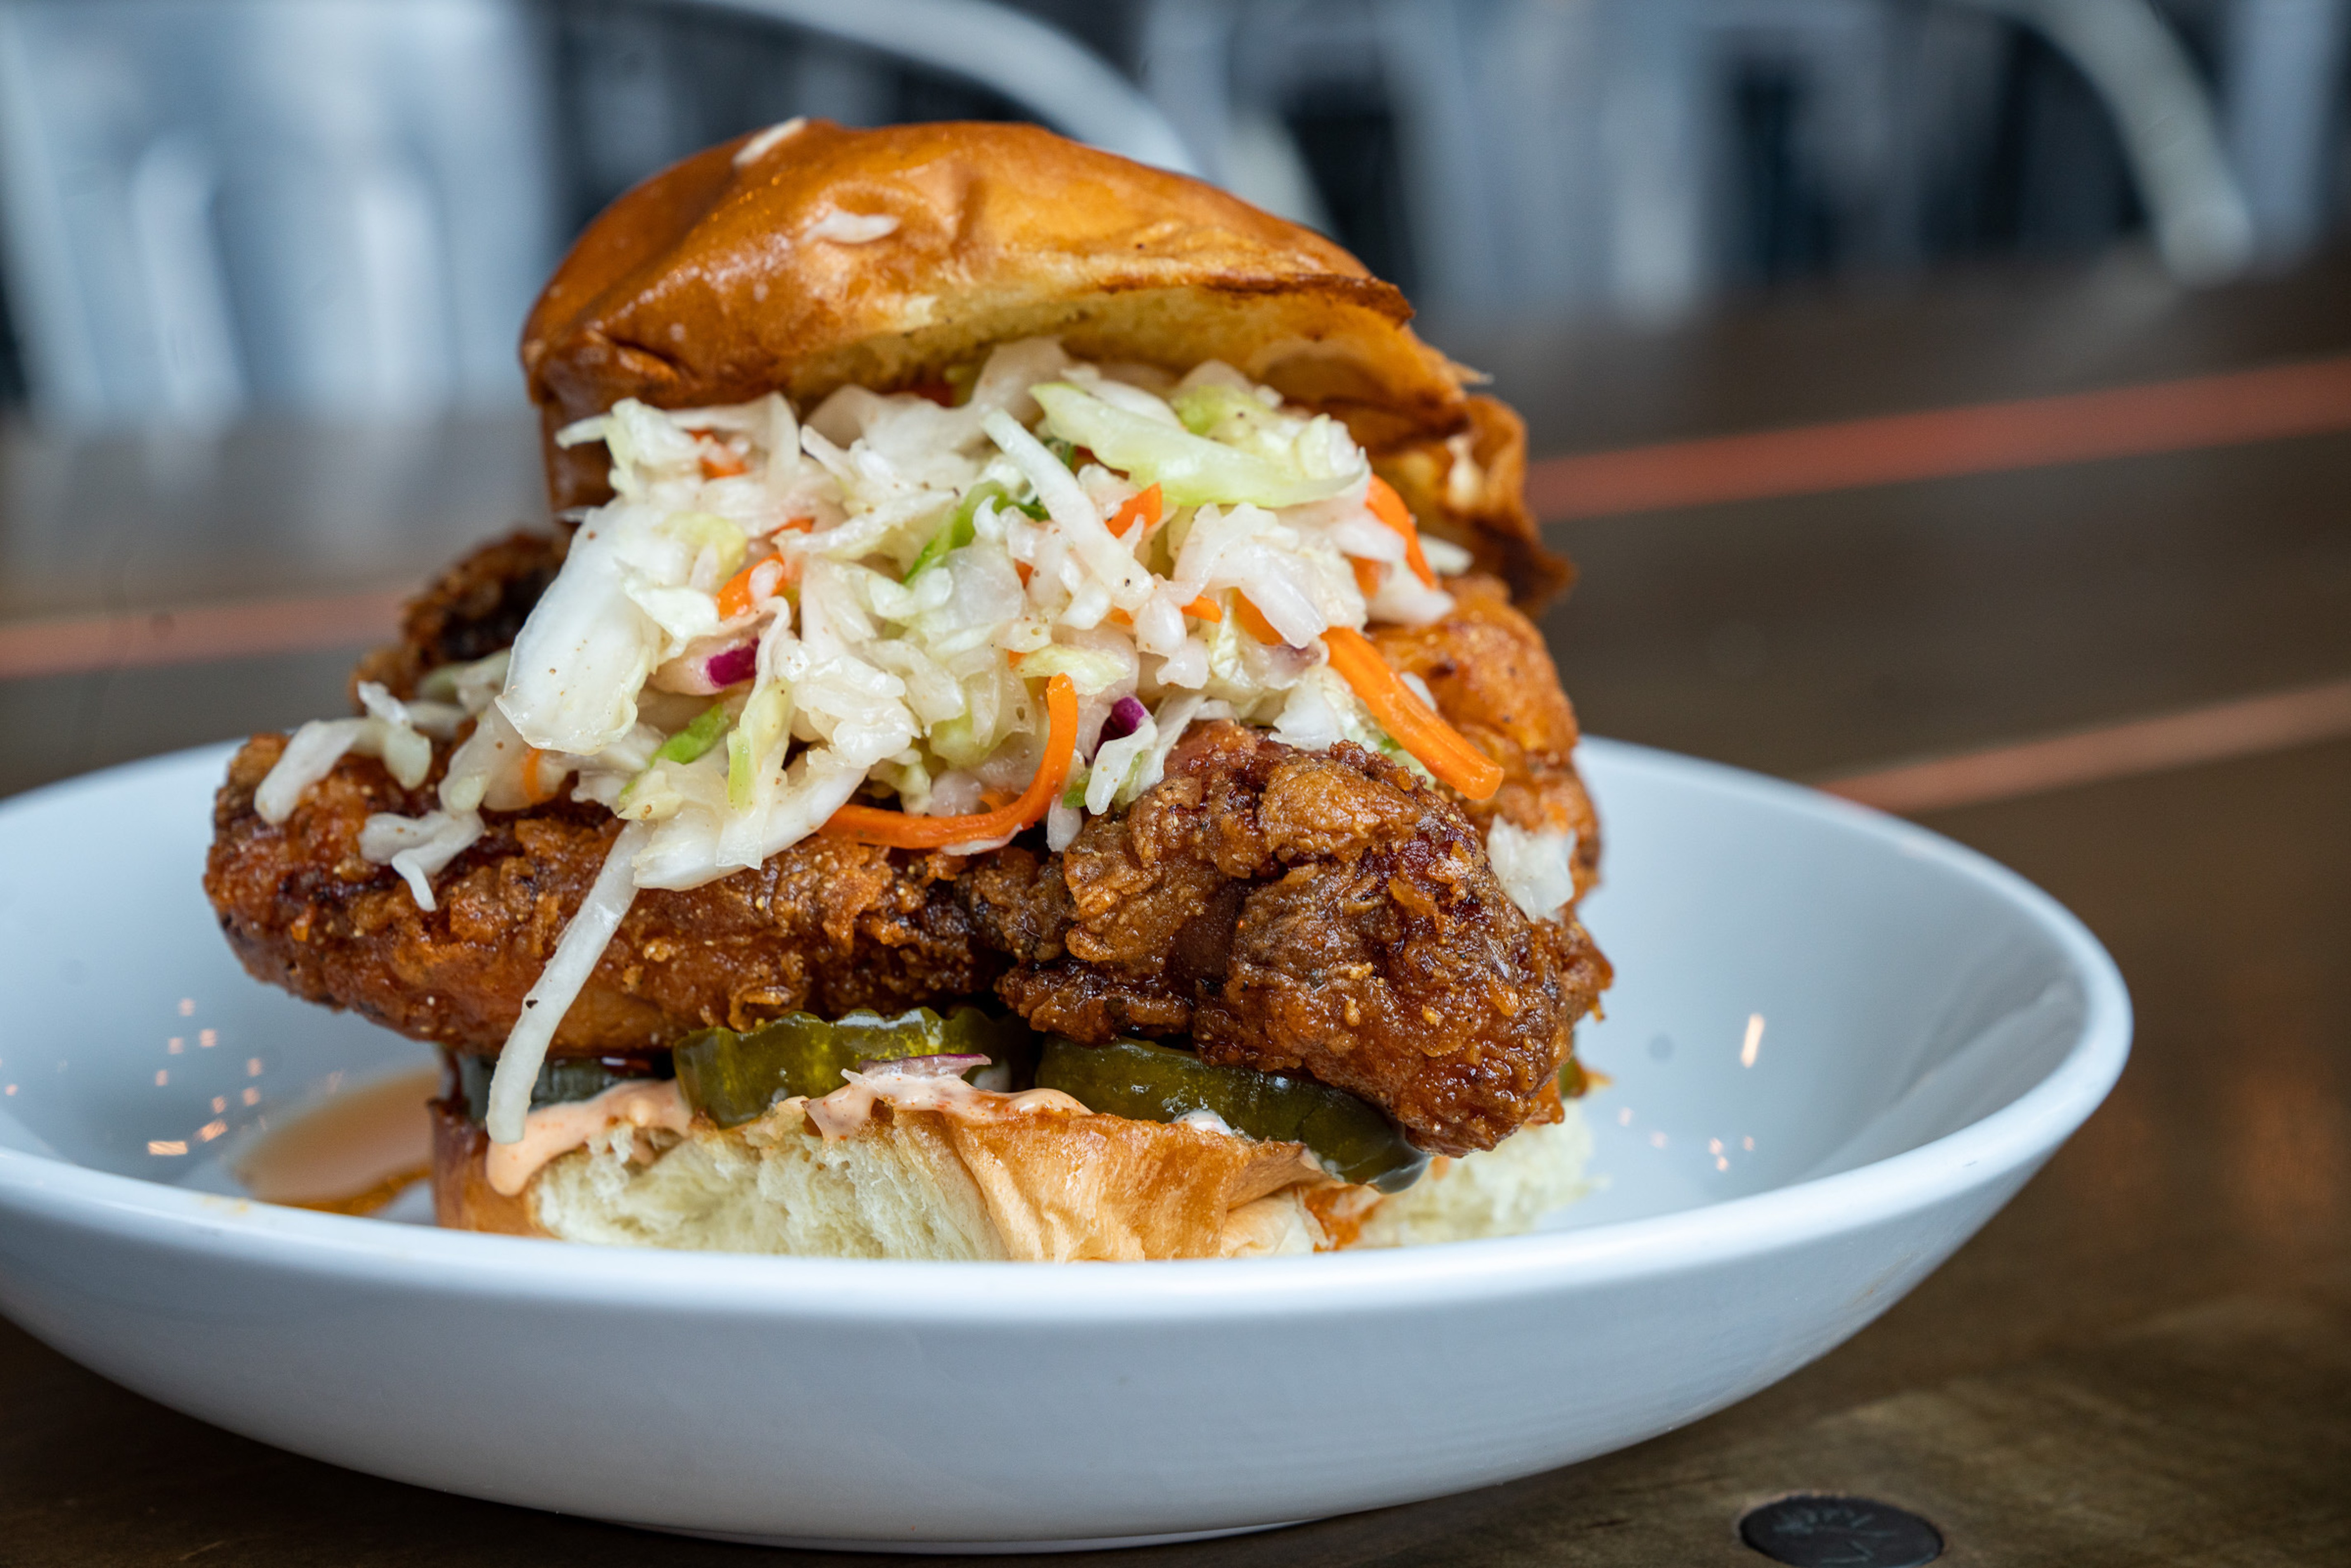 A new fried chicken restaurant is coming to Detroit's Fort Street Galley